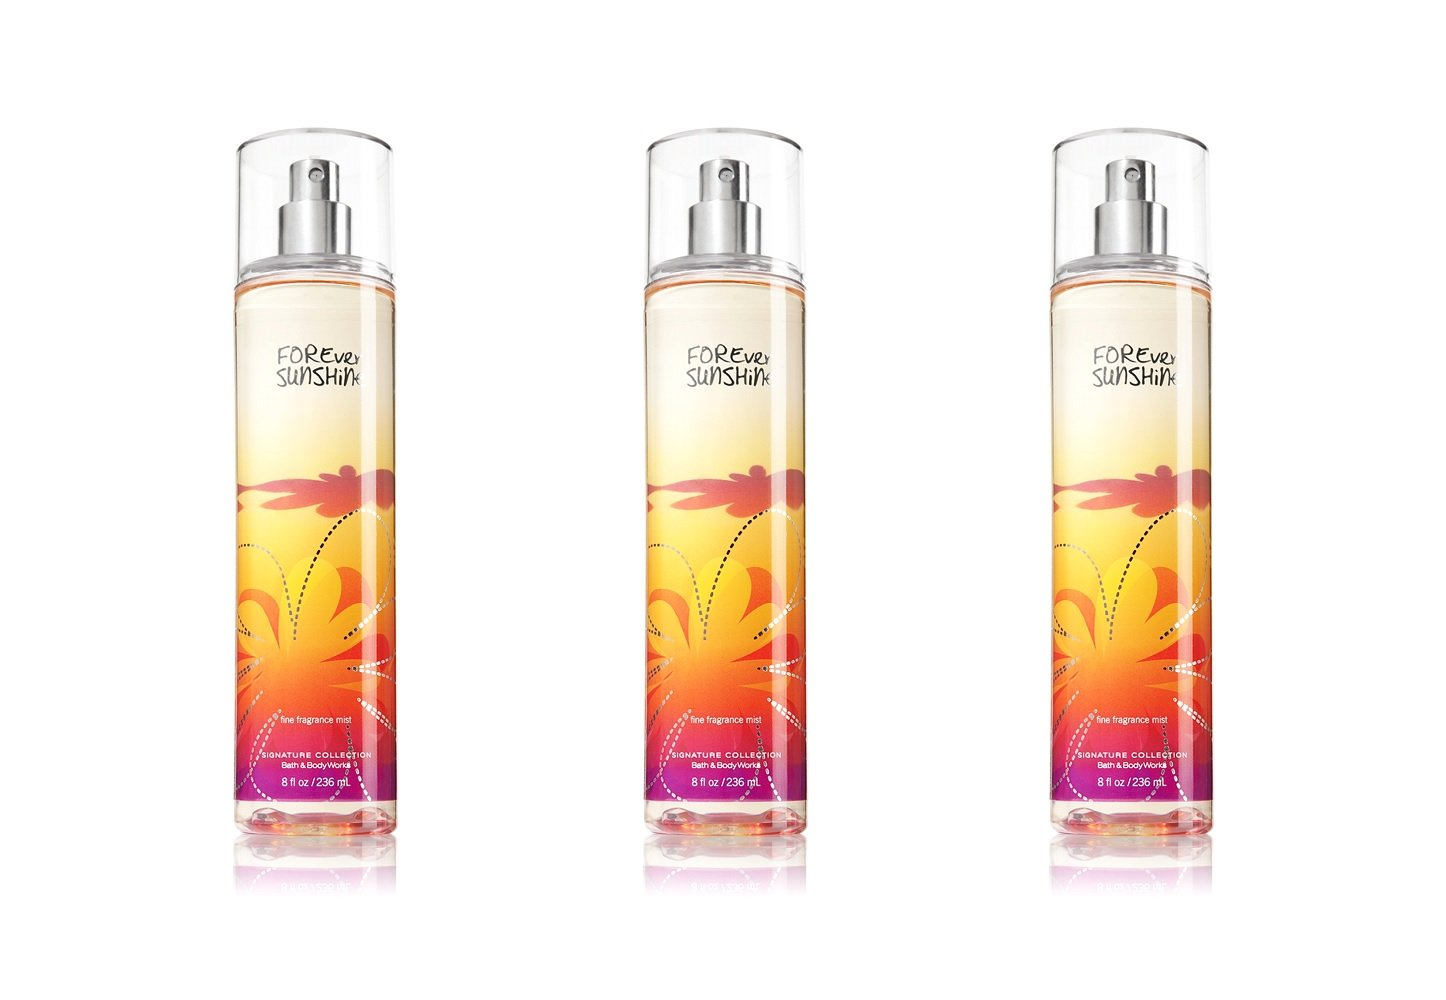 Lot of 3 Bath & Body Works Forever Sunshine Fine Fragrance Mist 8 Fl Oz Each